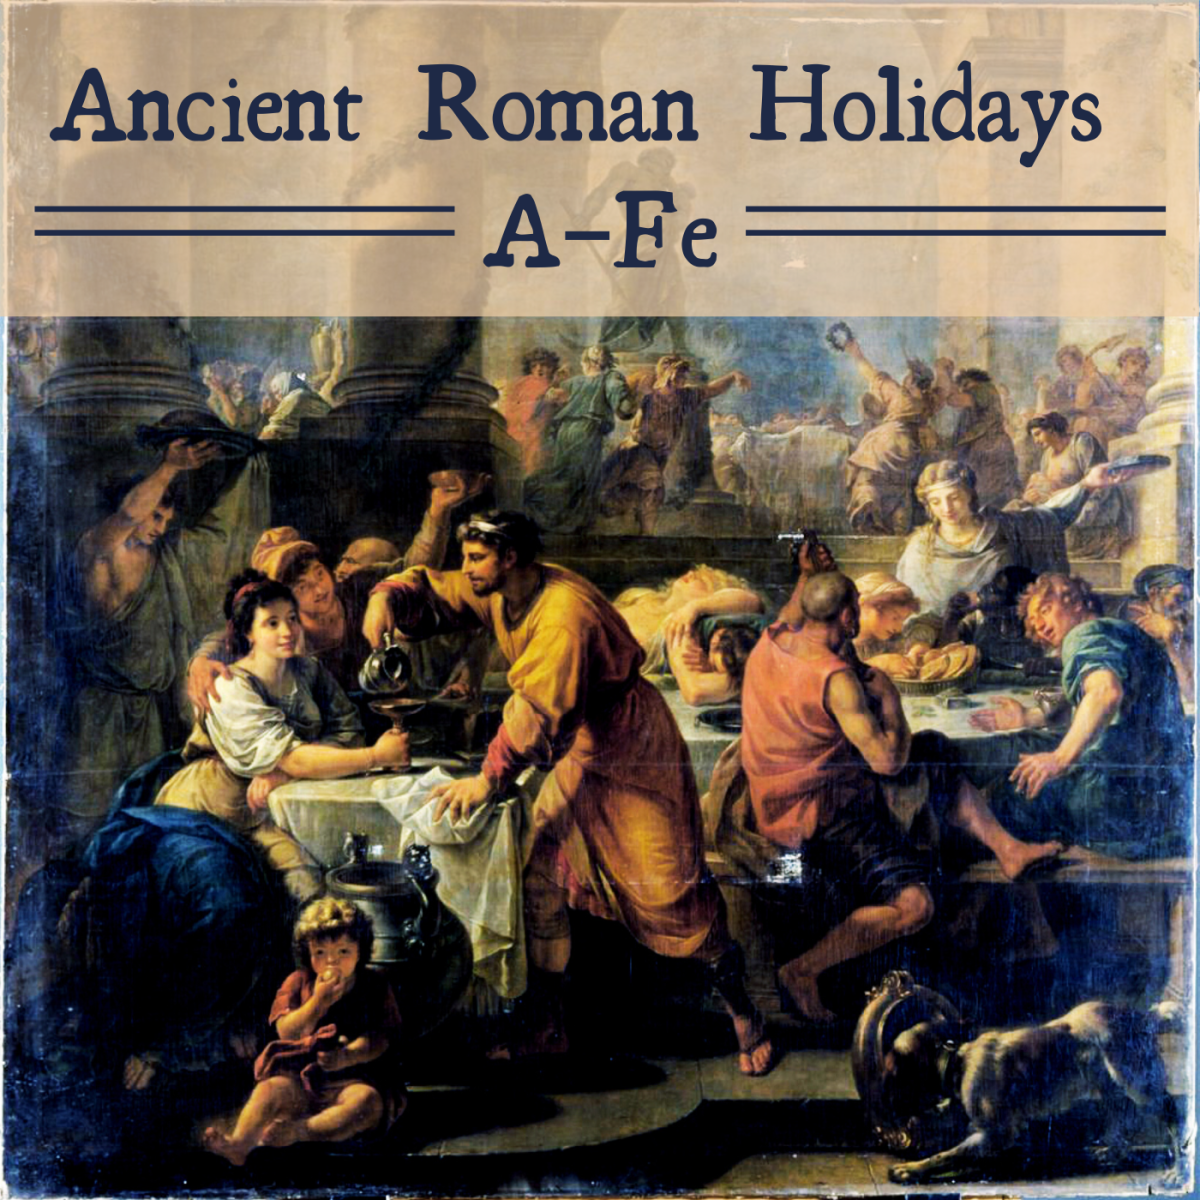 Ancient Rome was home to a wide variety of raucous celebrations and extended holidays, many of which existed to honor specific deities.